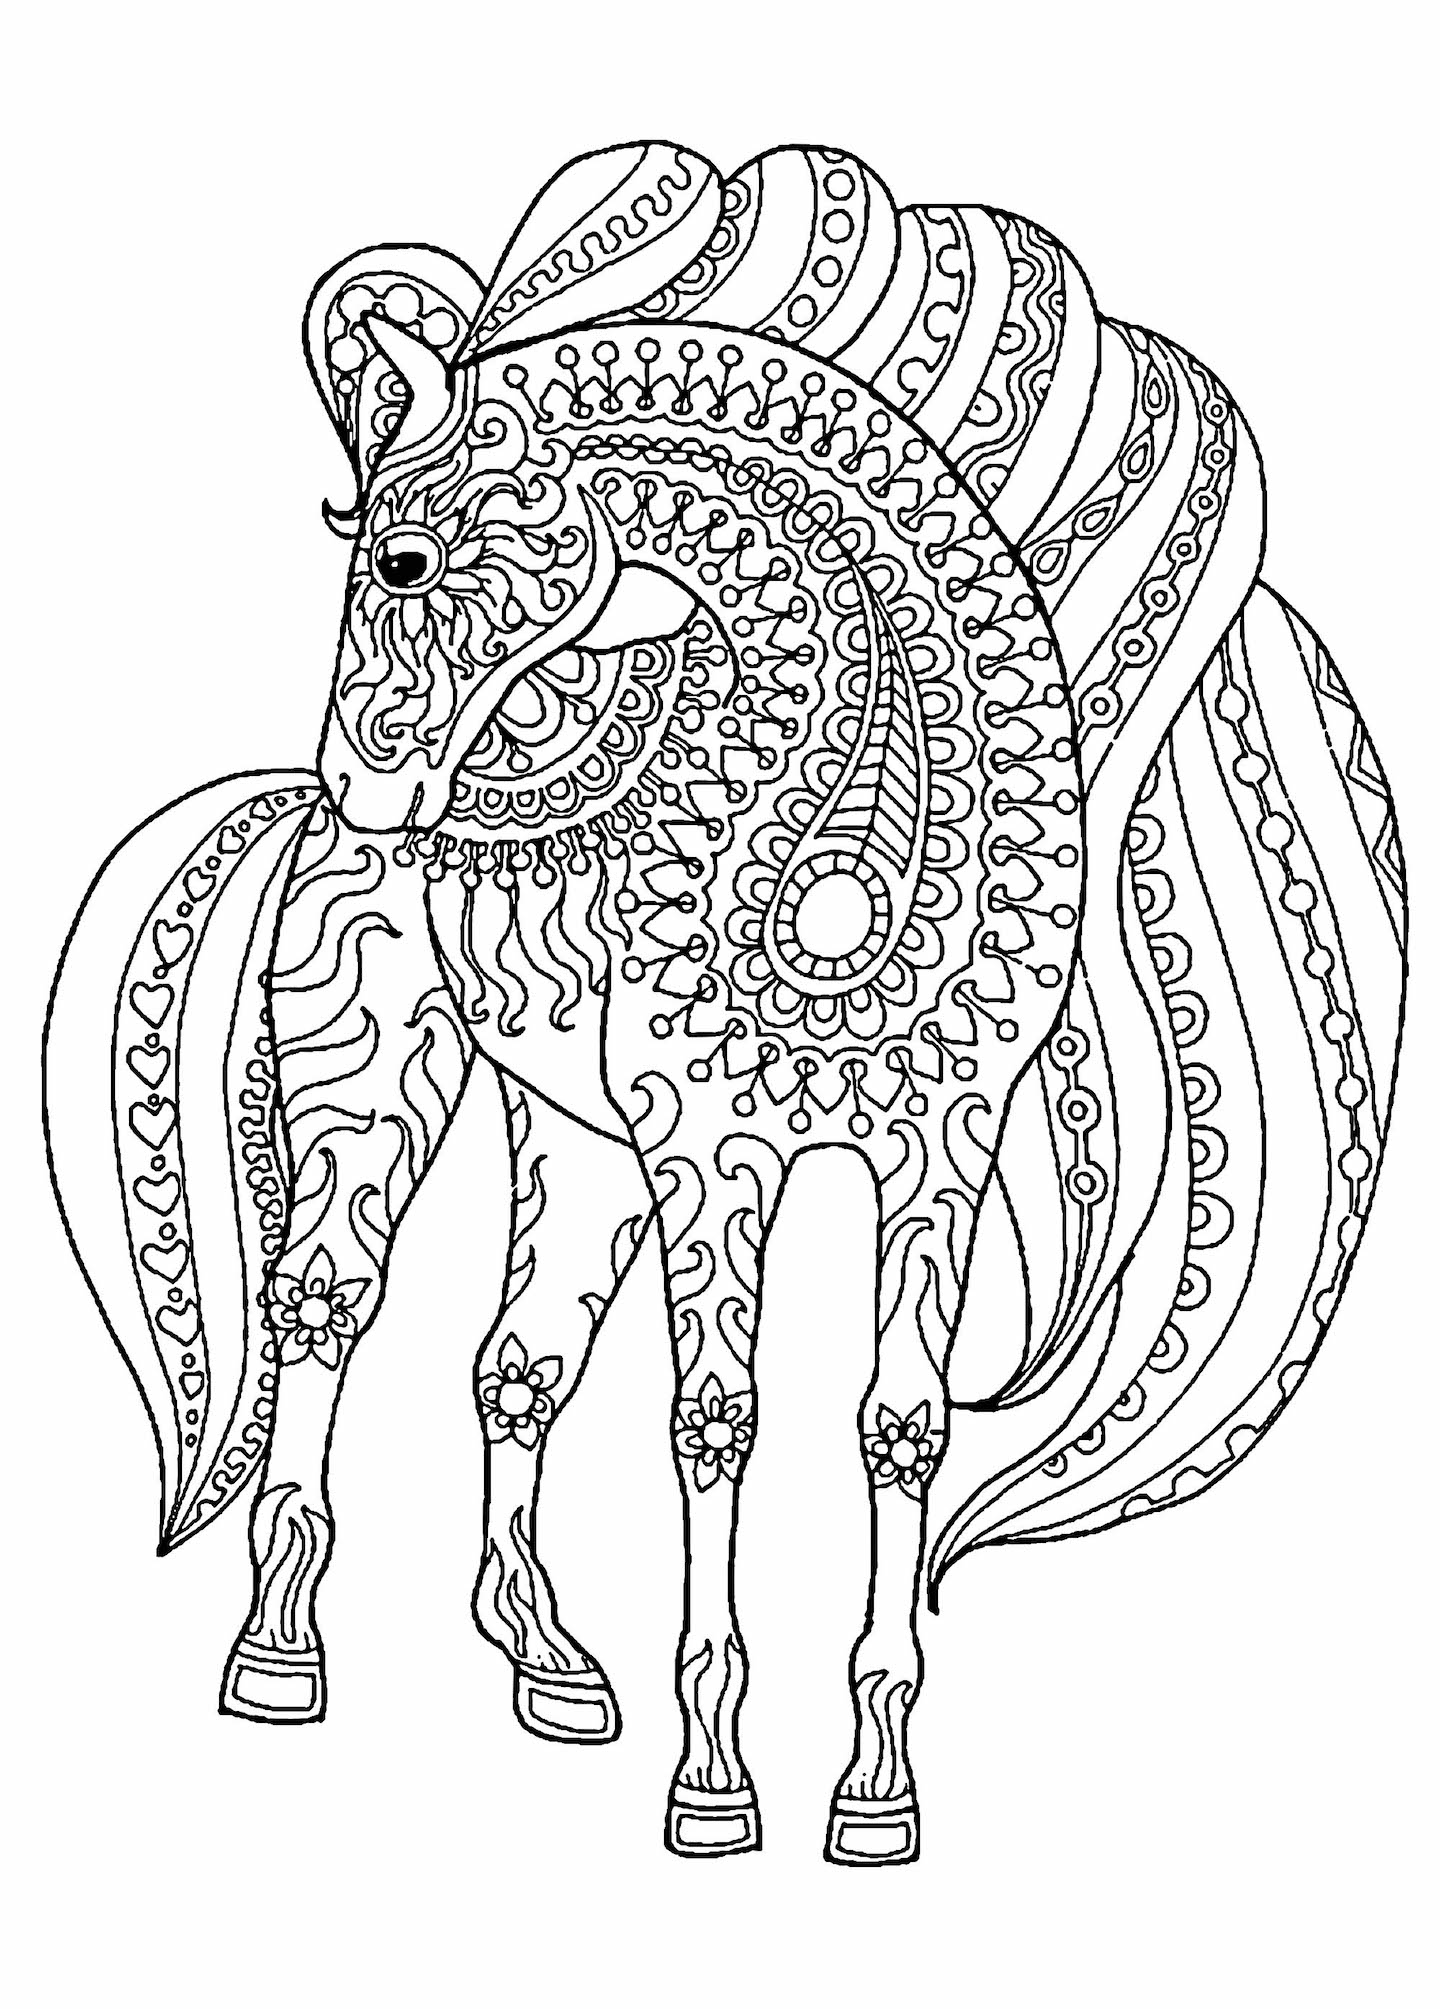 coloring images horse 9 horse coloring pages free pdf document download coloring horse images